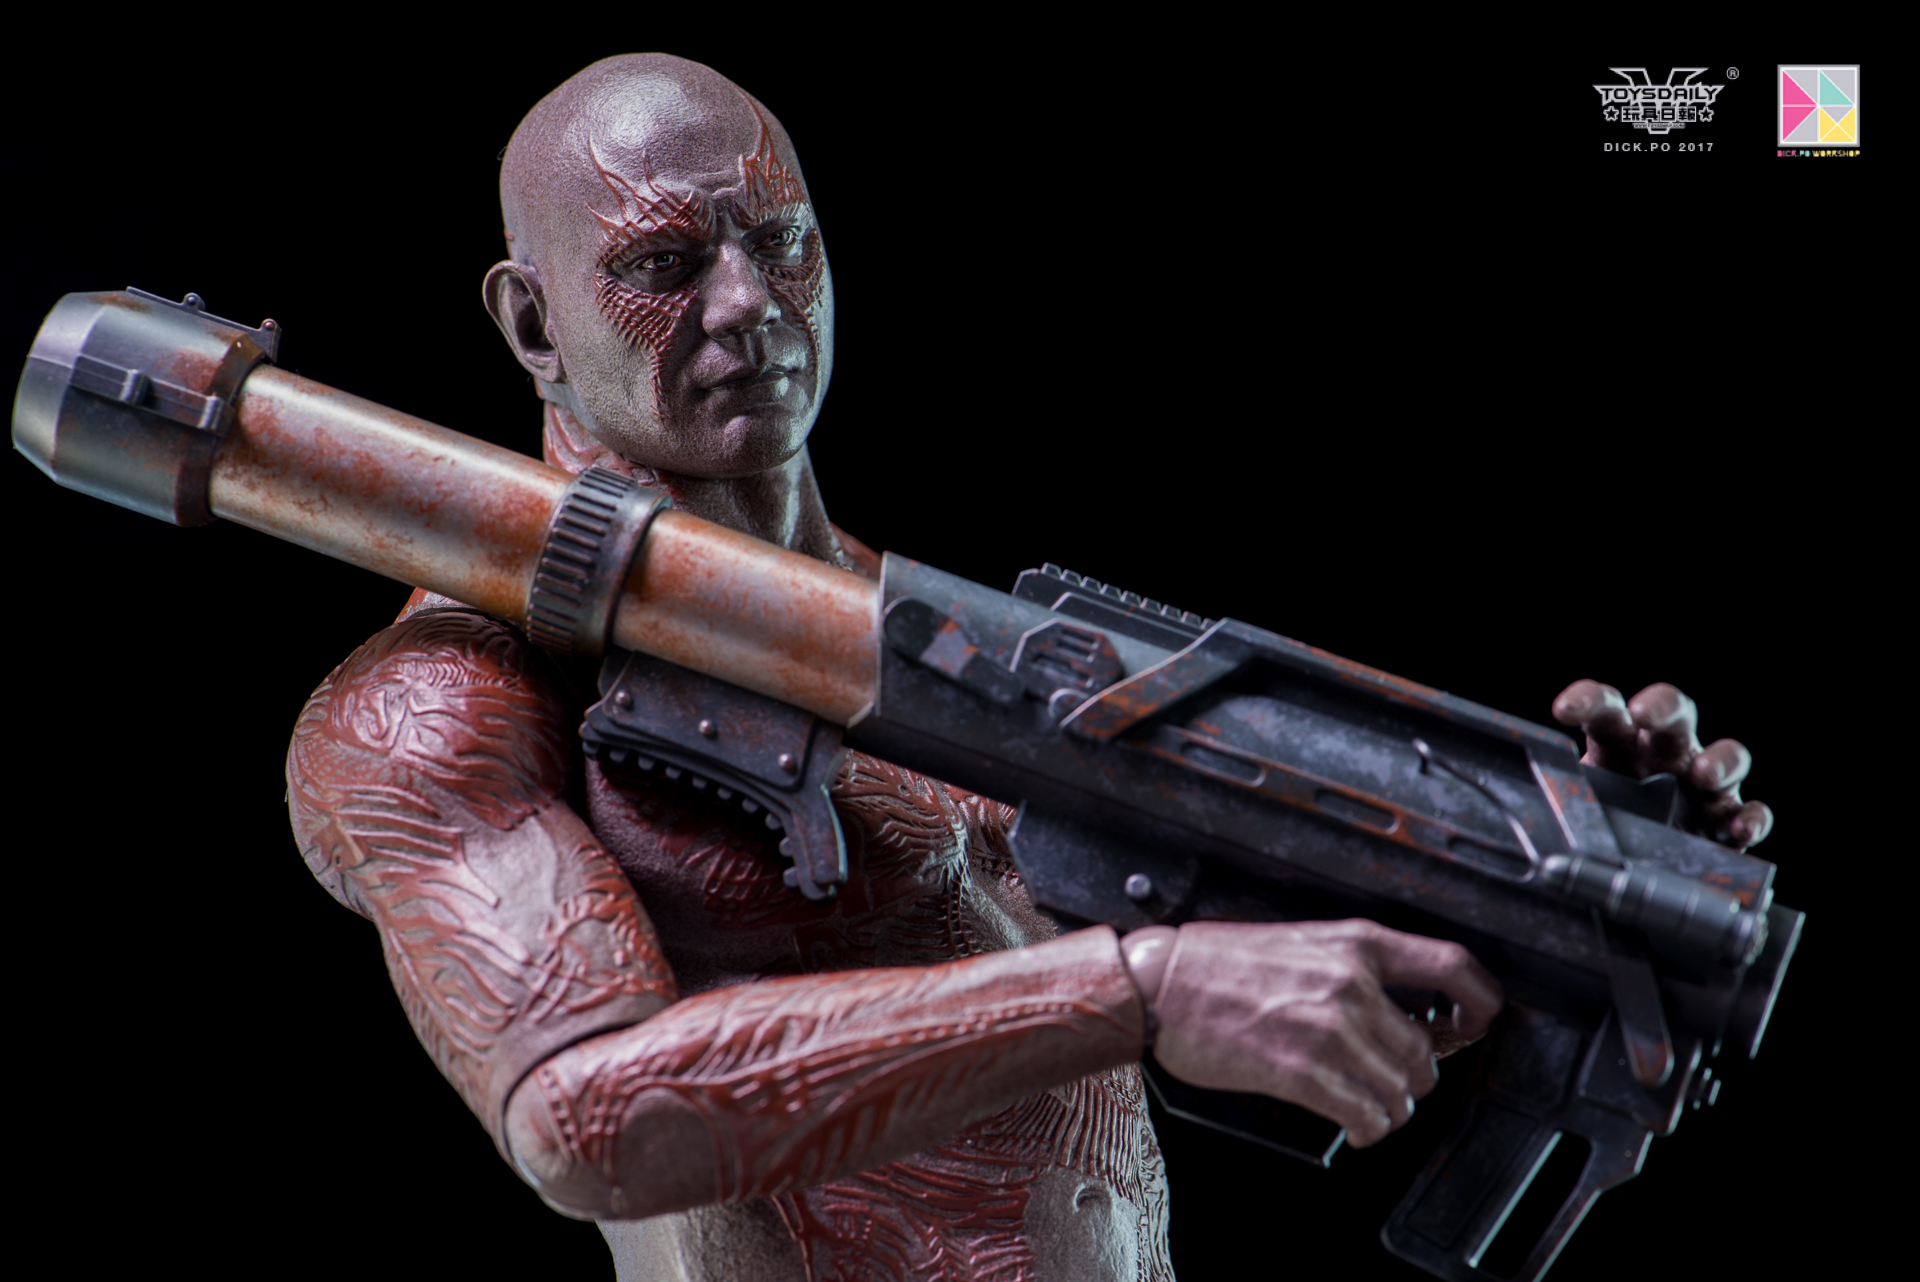 toysdaily_dick.po_Hottoys_DARX-44.jpg